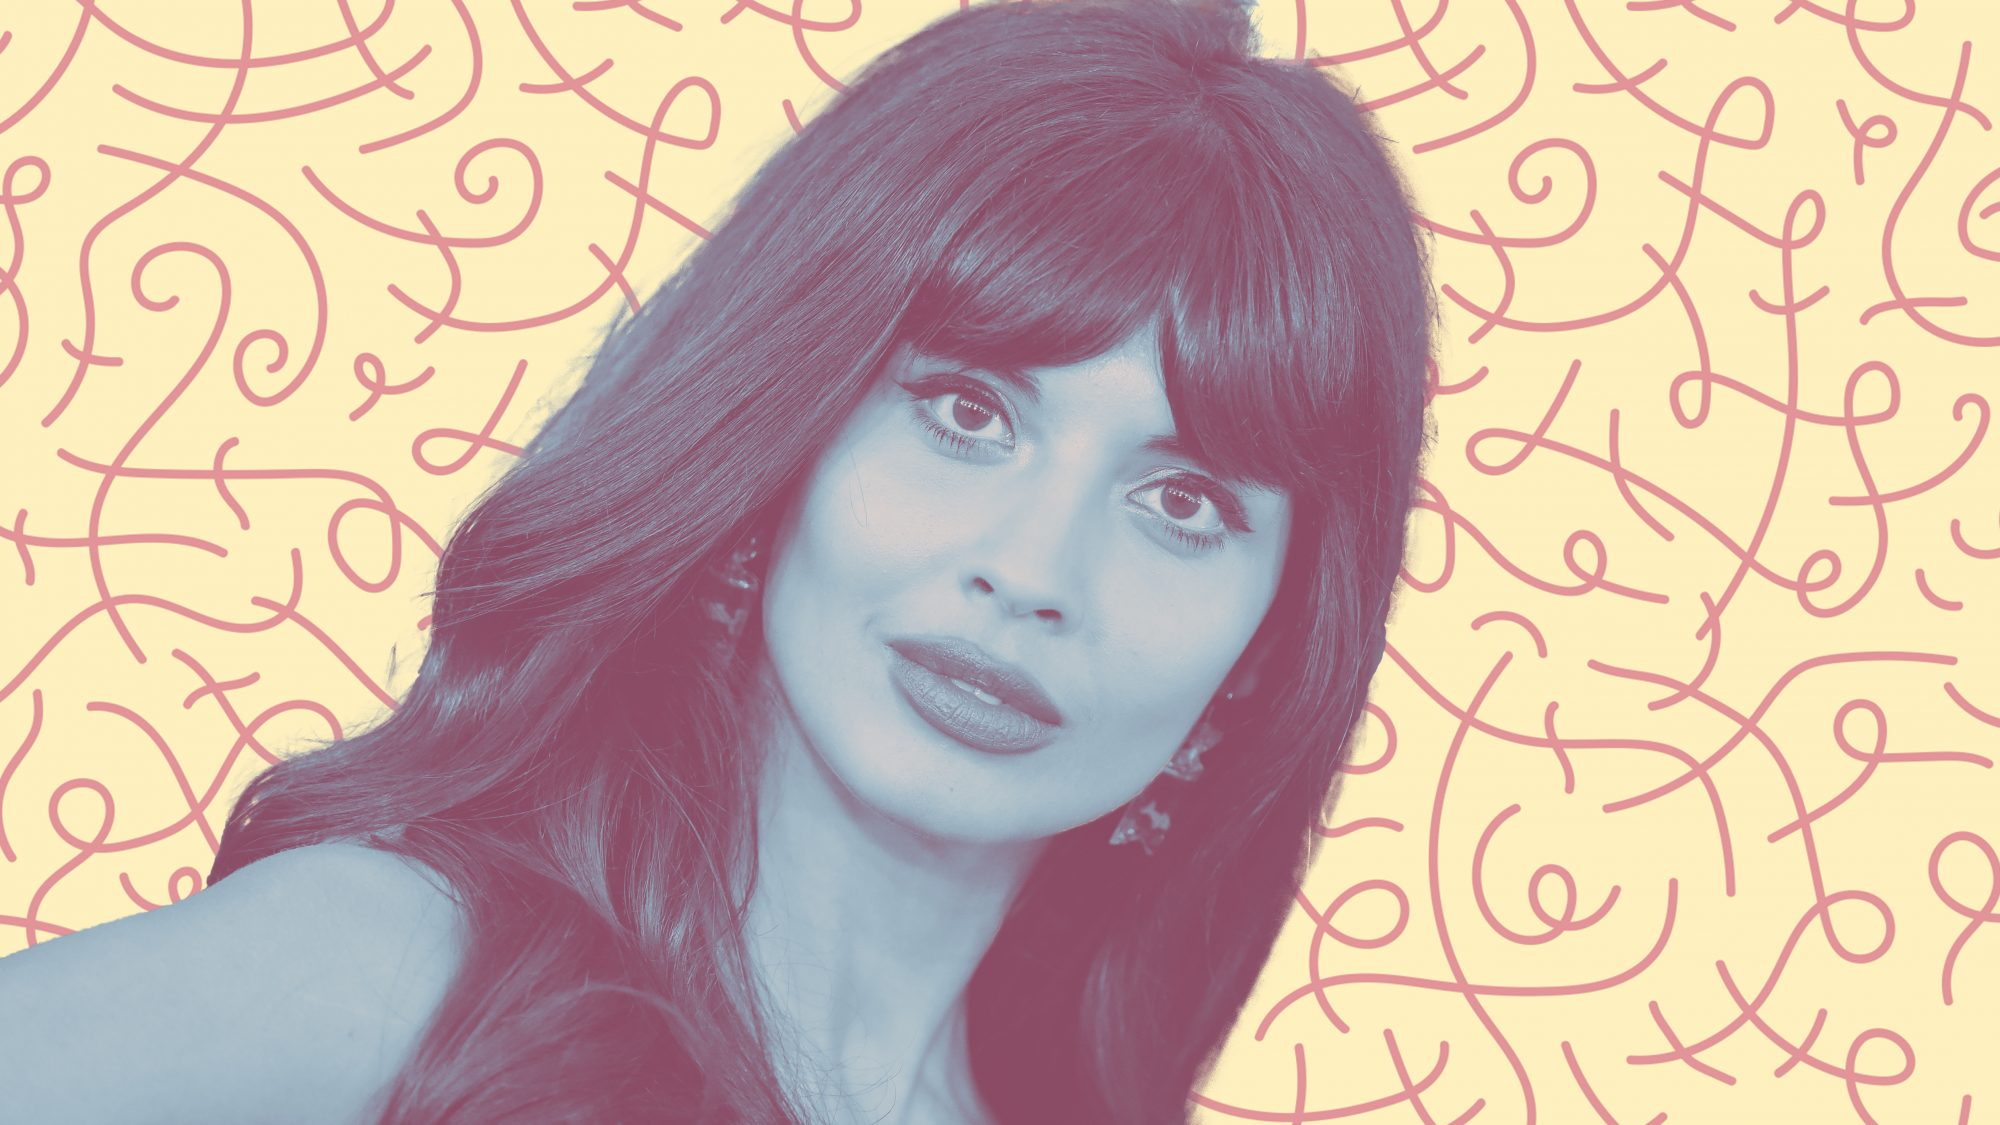 Jameela Jamil Just Revealed She Has a Rare Disorder That Does Something Crazy Uncomfortable to Her Skin